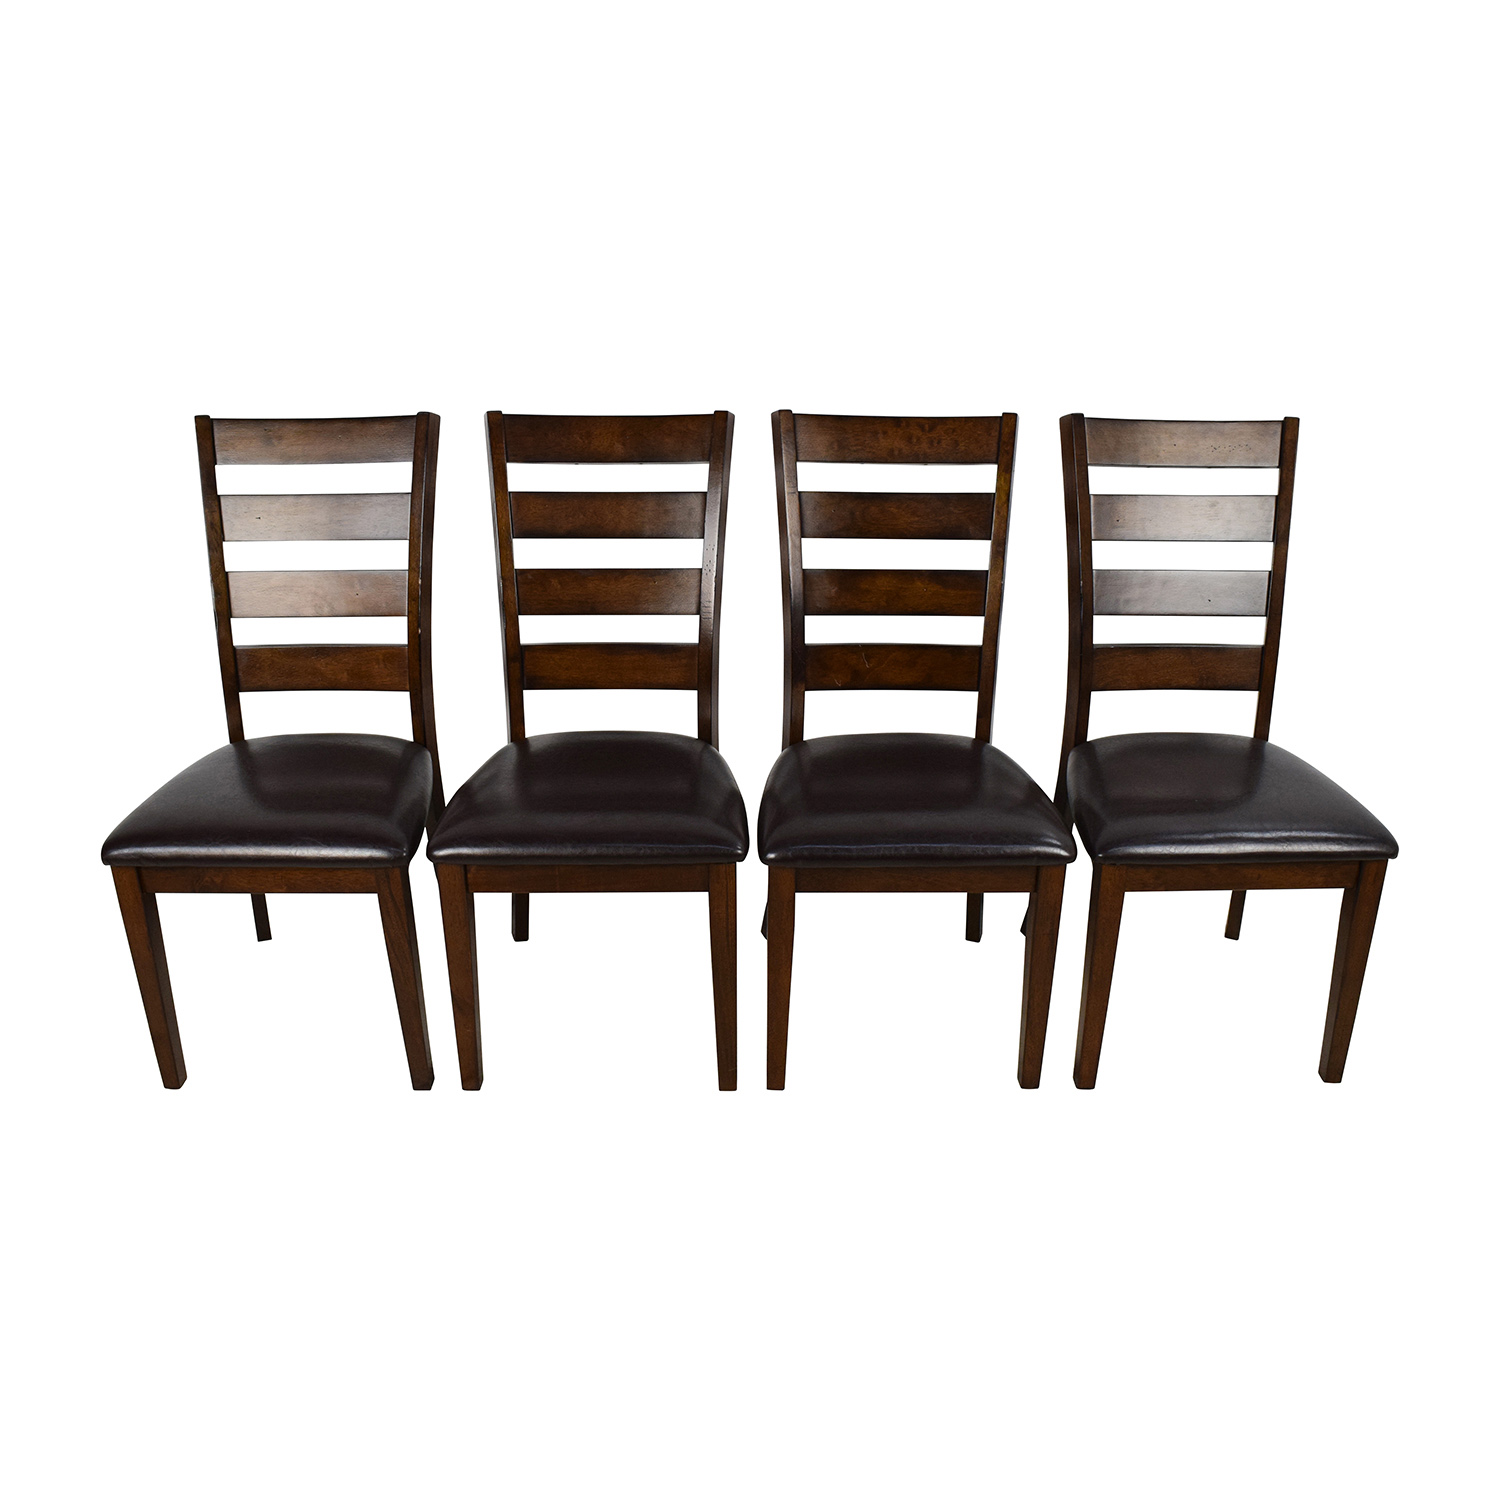 Raymour & Flanigan Kona Dining Chairs / Dining Chairs